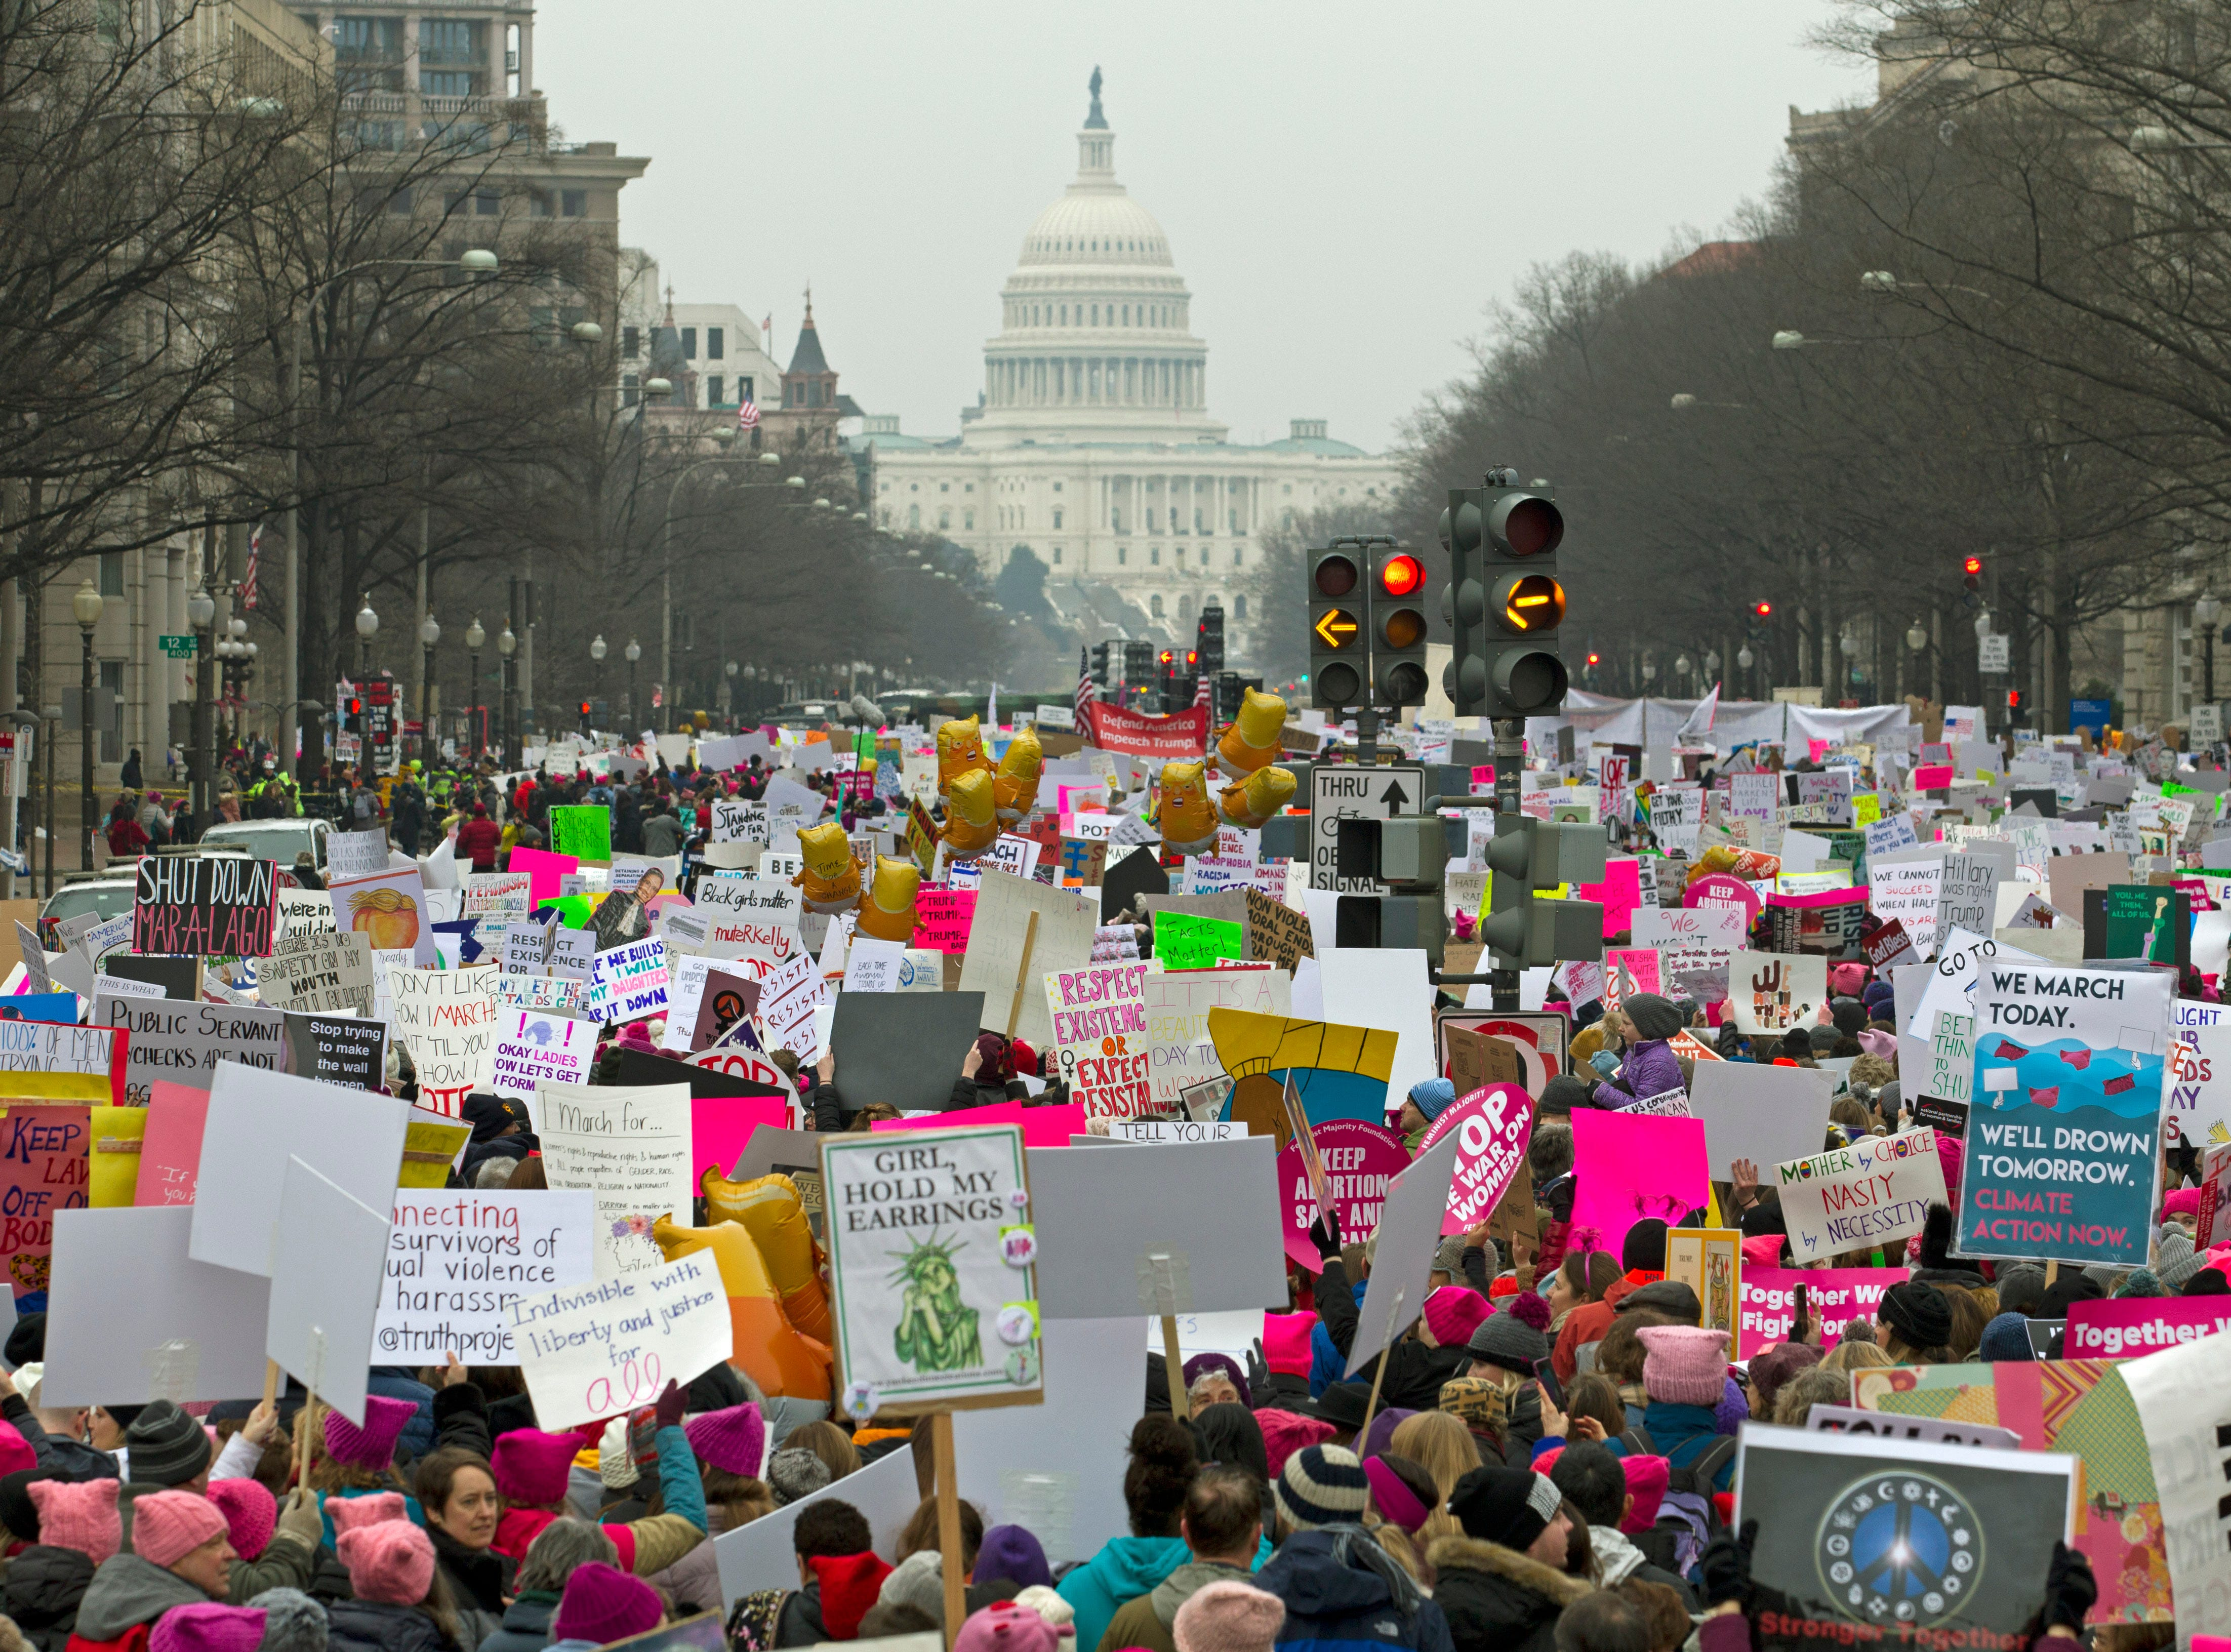 Demonstrators hold signs on Pennsylvania Avenue during the Women's March in Washington on Saturday, Jan. 19, 2019.